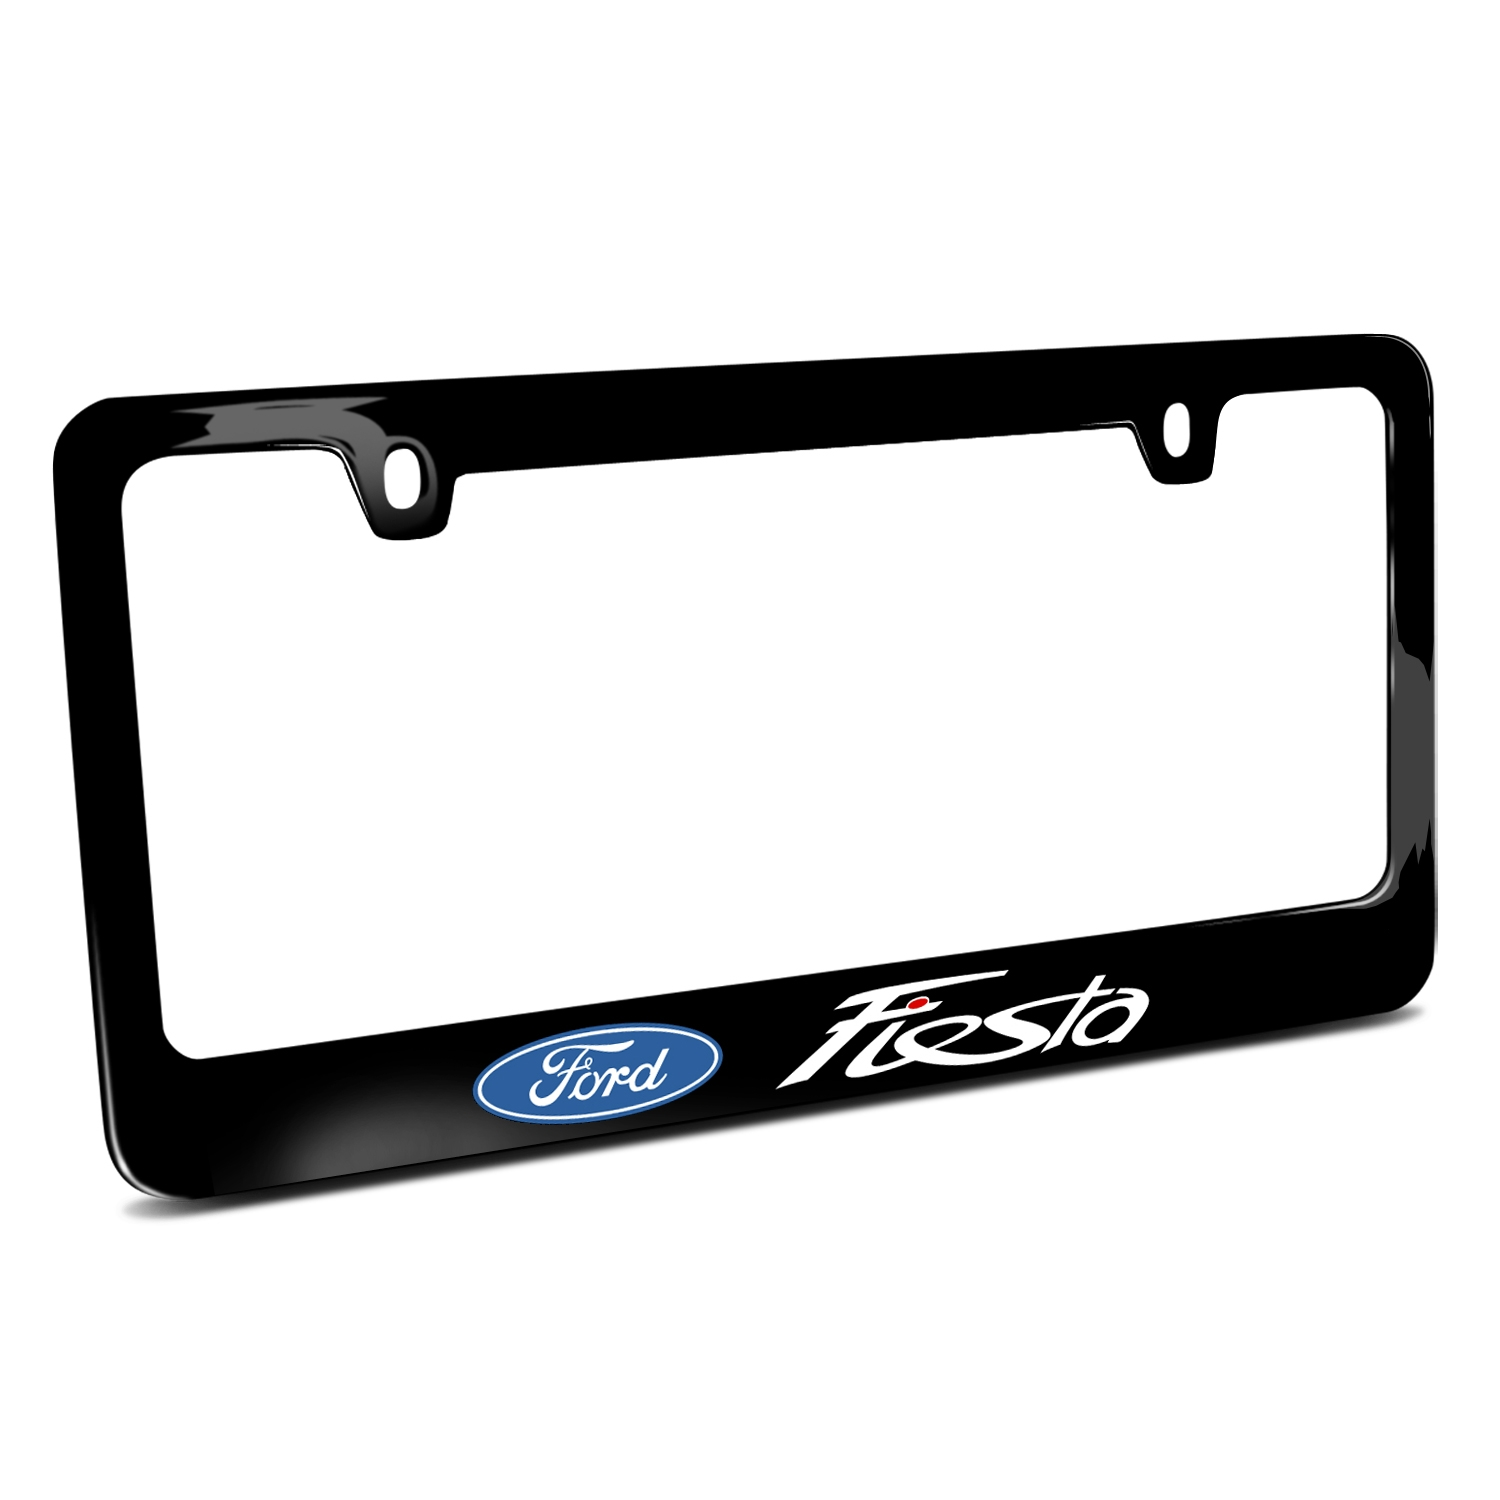 Ford Fiesta Black Metal License Plate Frame